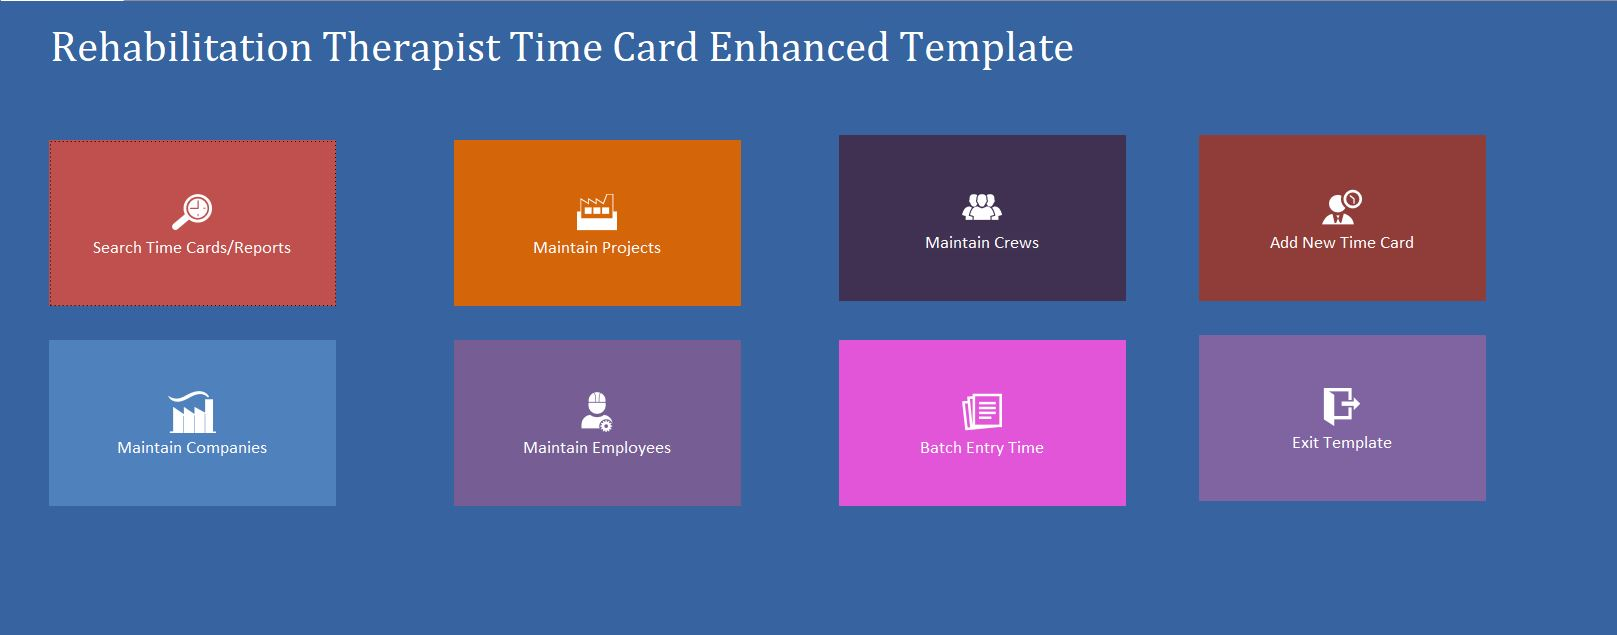 Enhanced Rehabilitation Therapist Time Card Template Database | Time Card Database